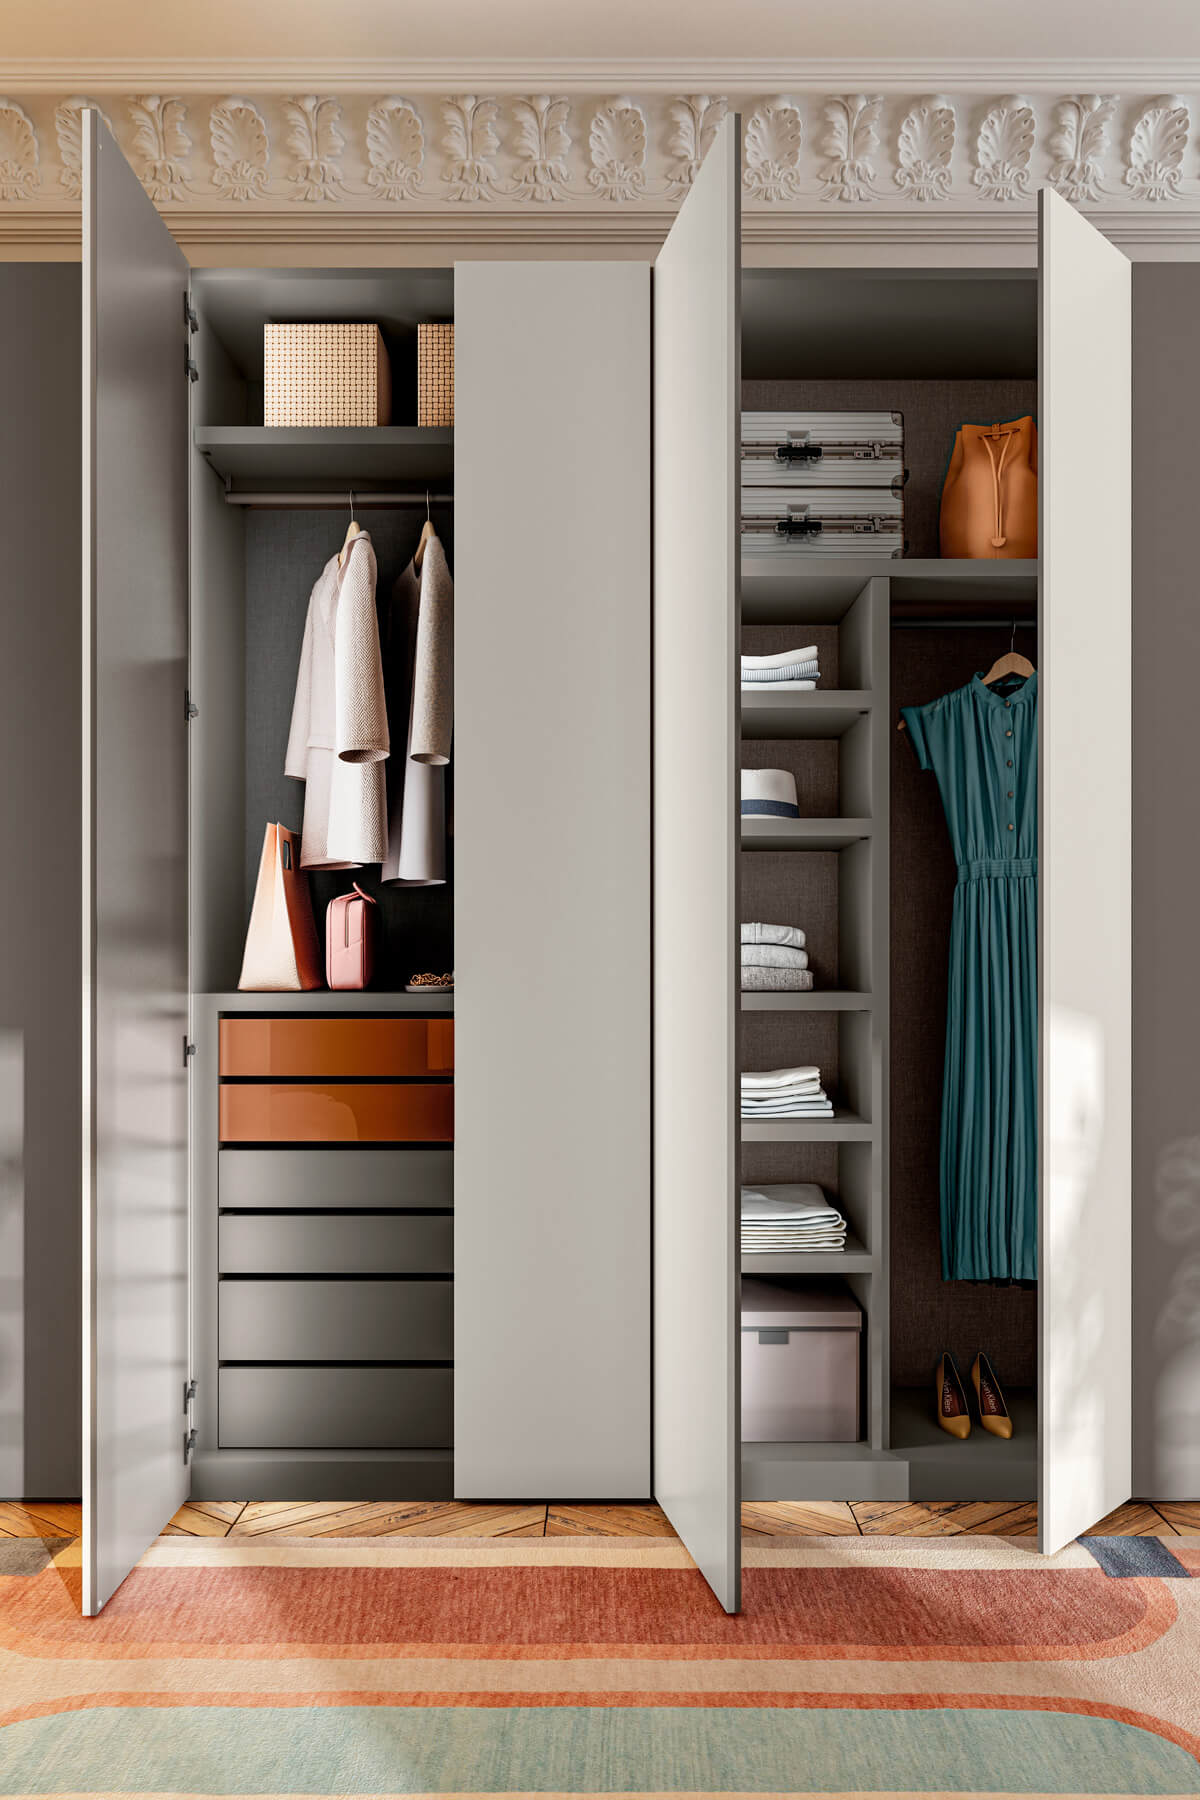 hinged-wardrobe-with-drawers